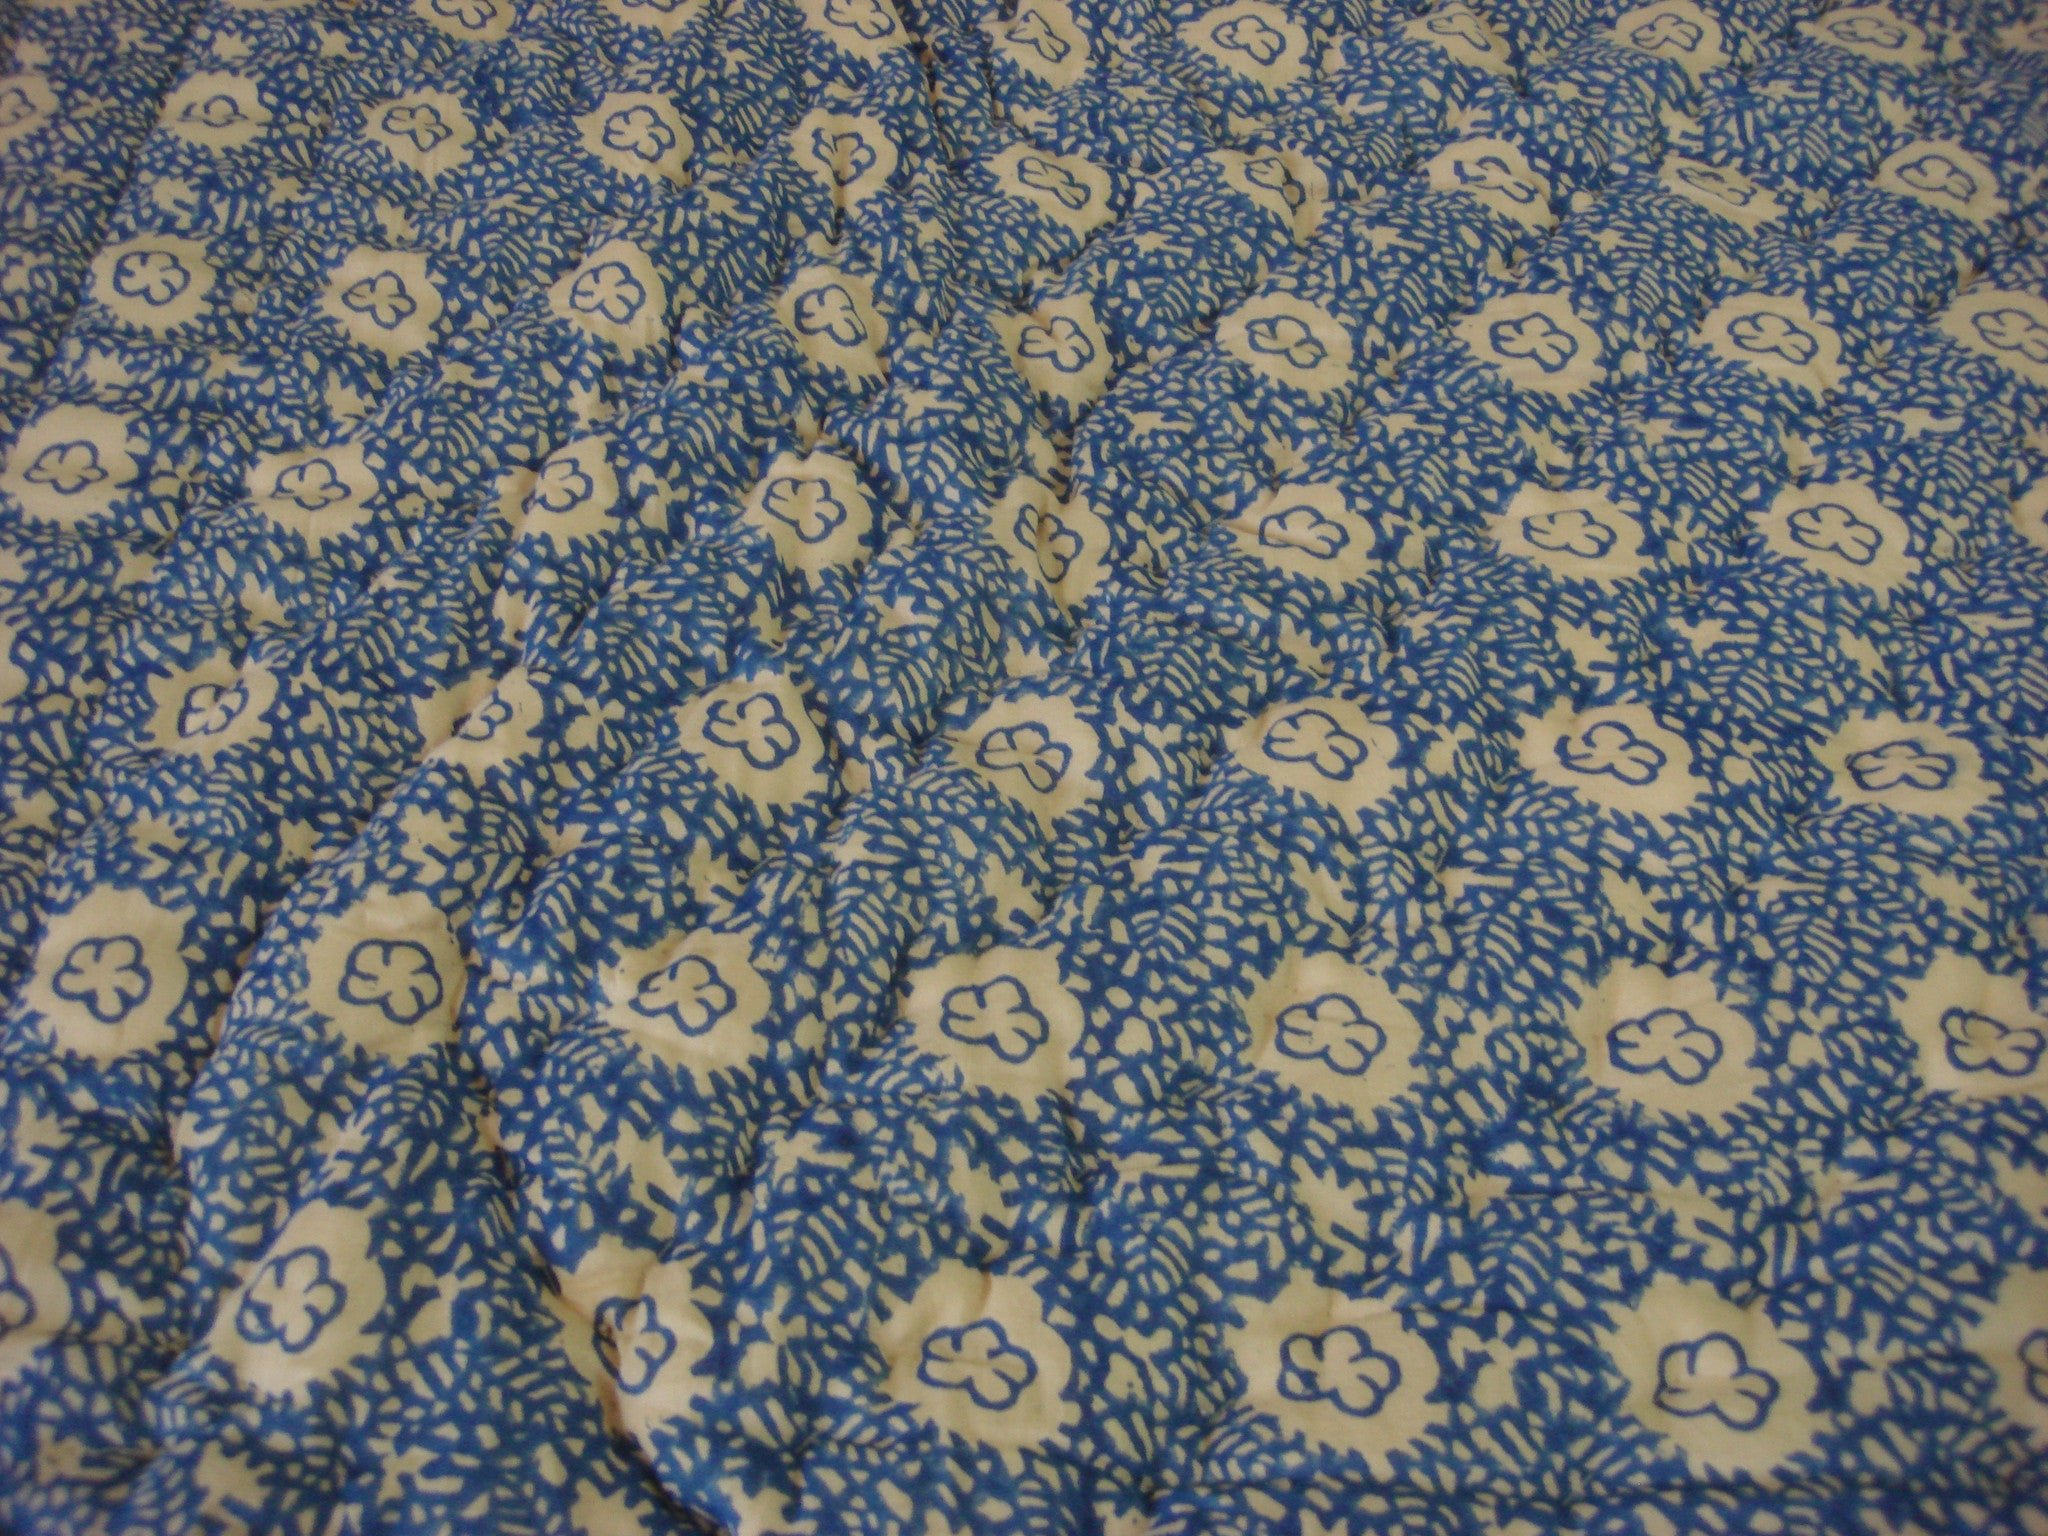 QBP 168 - 100% Handmade Cotton Queen Quilt - Blue Sand , Quilts - Pentagon Crafts, Pentagon Crafts  - 4